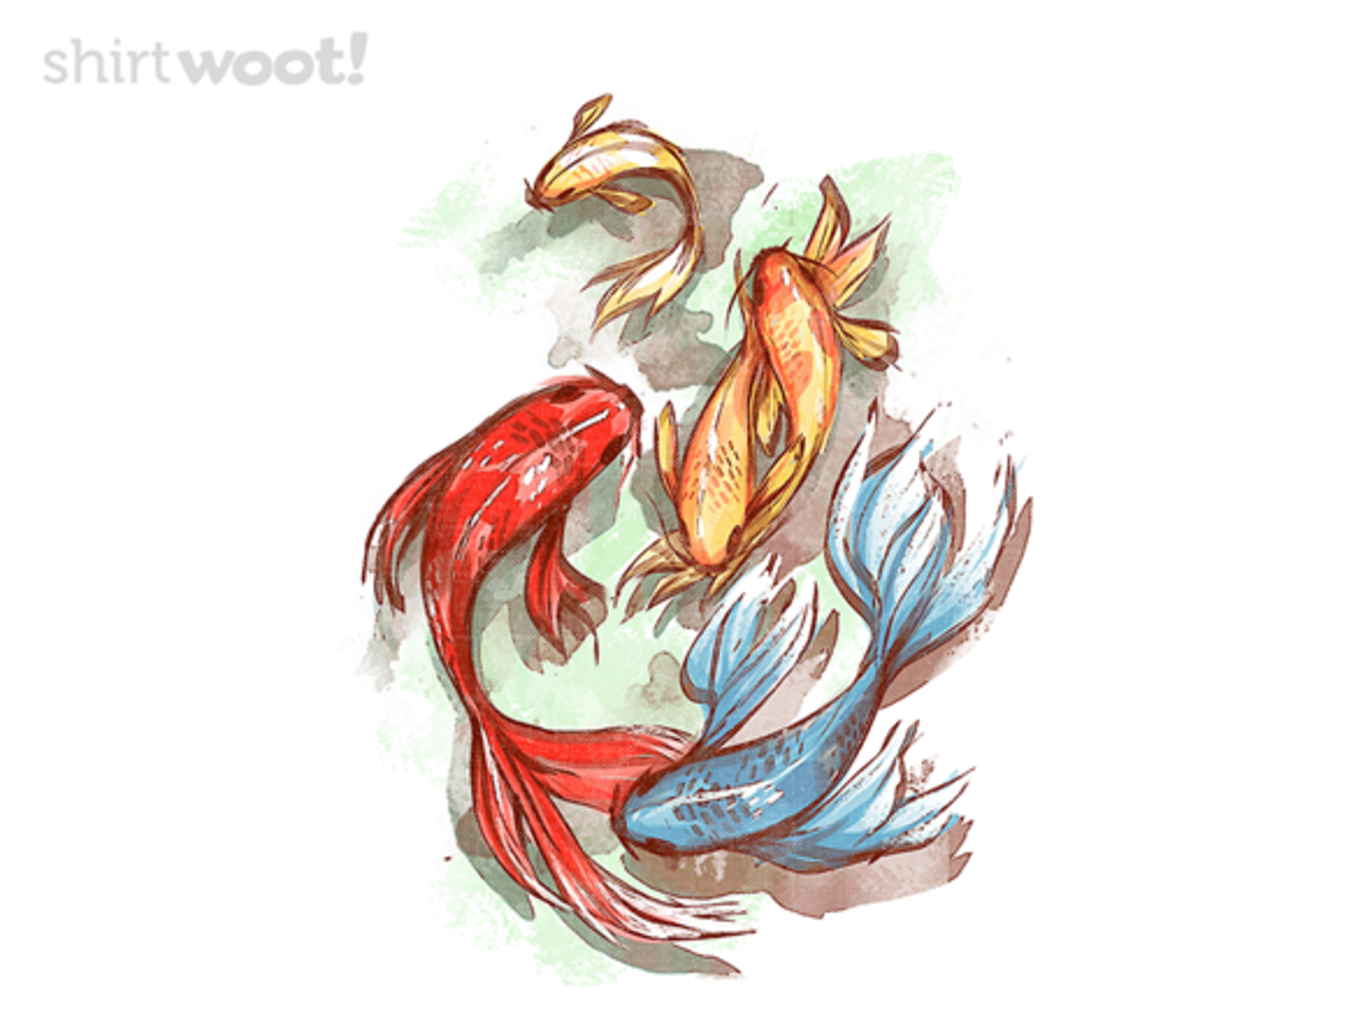 Woot!: Red Fish, Blue Fish